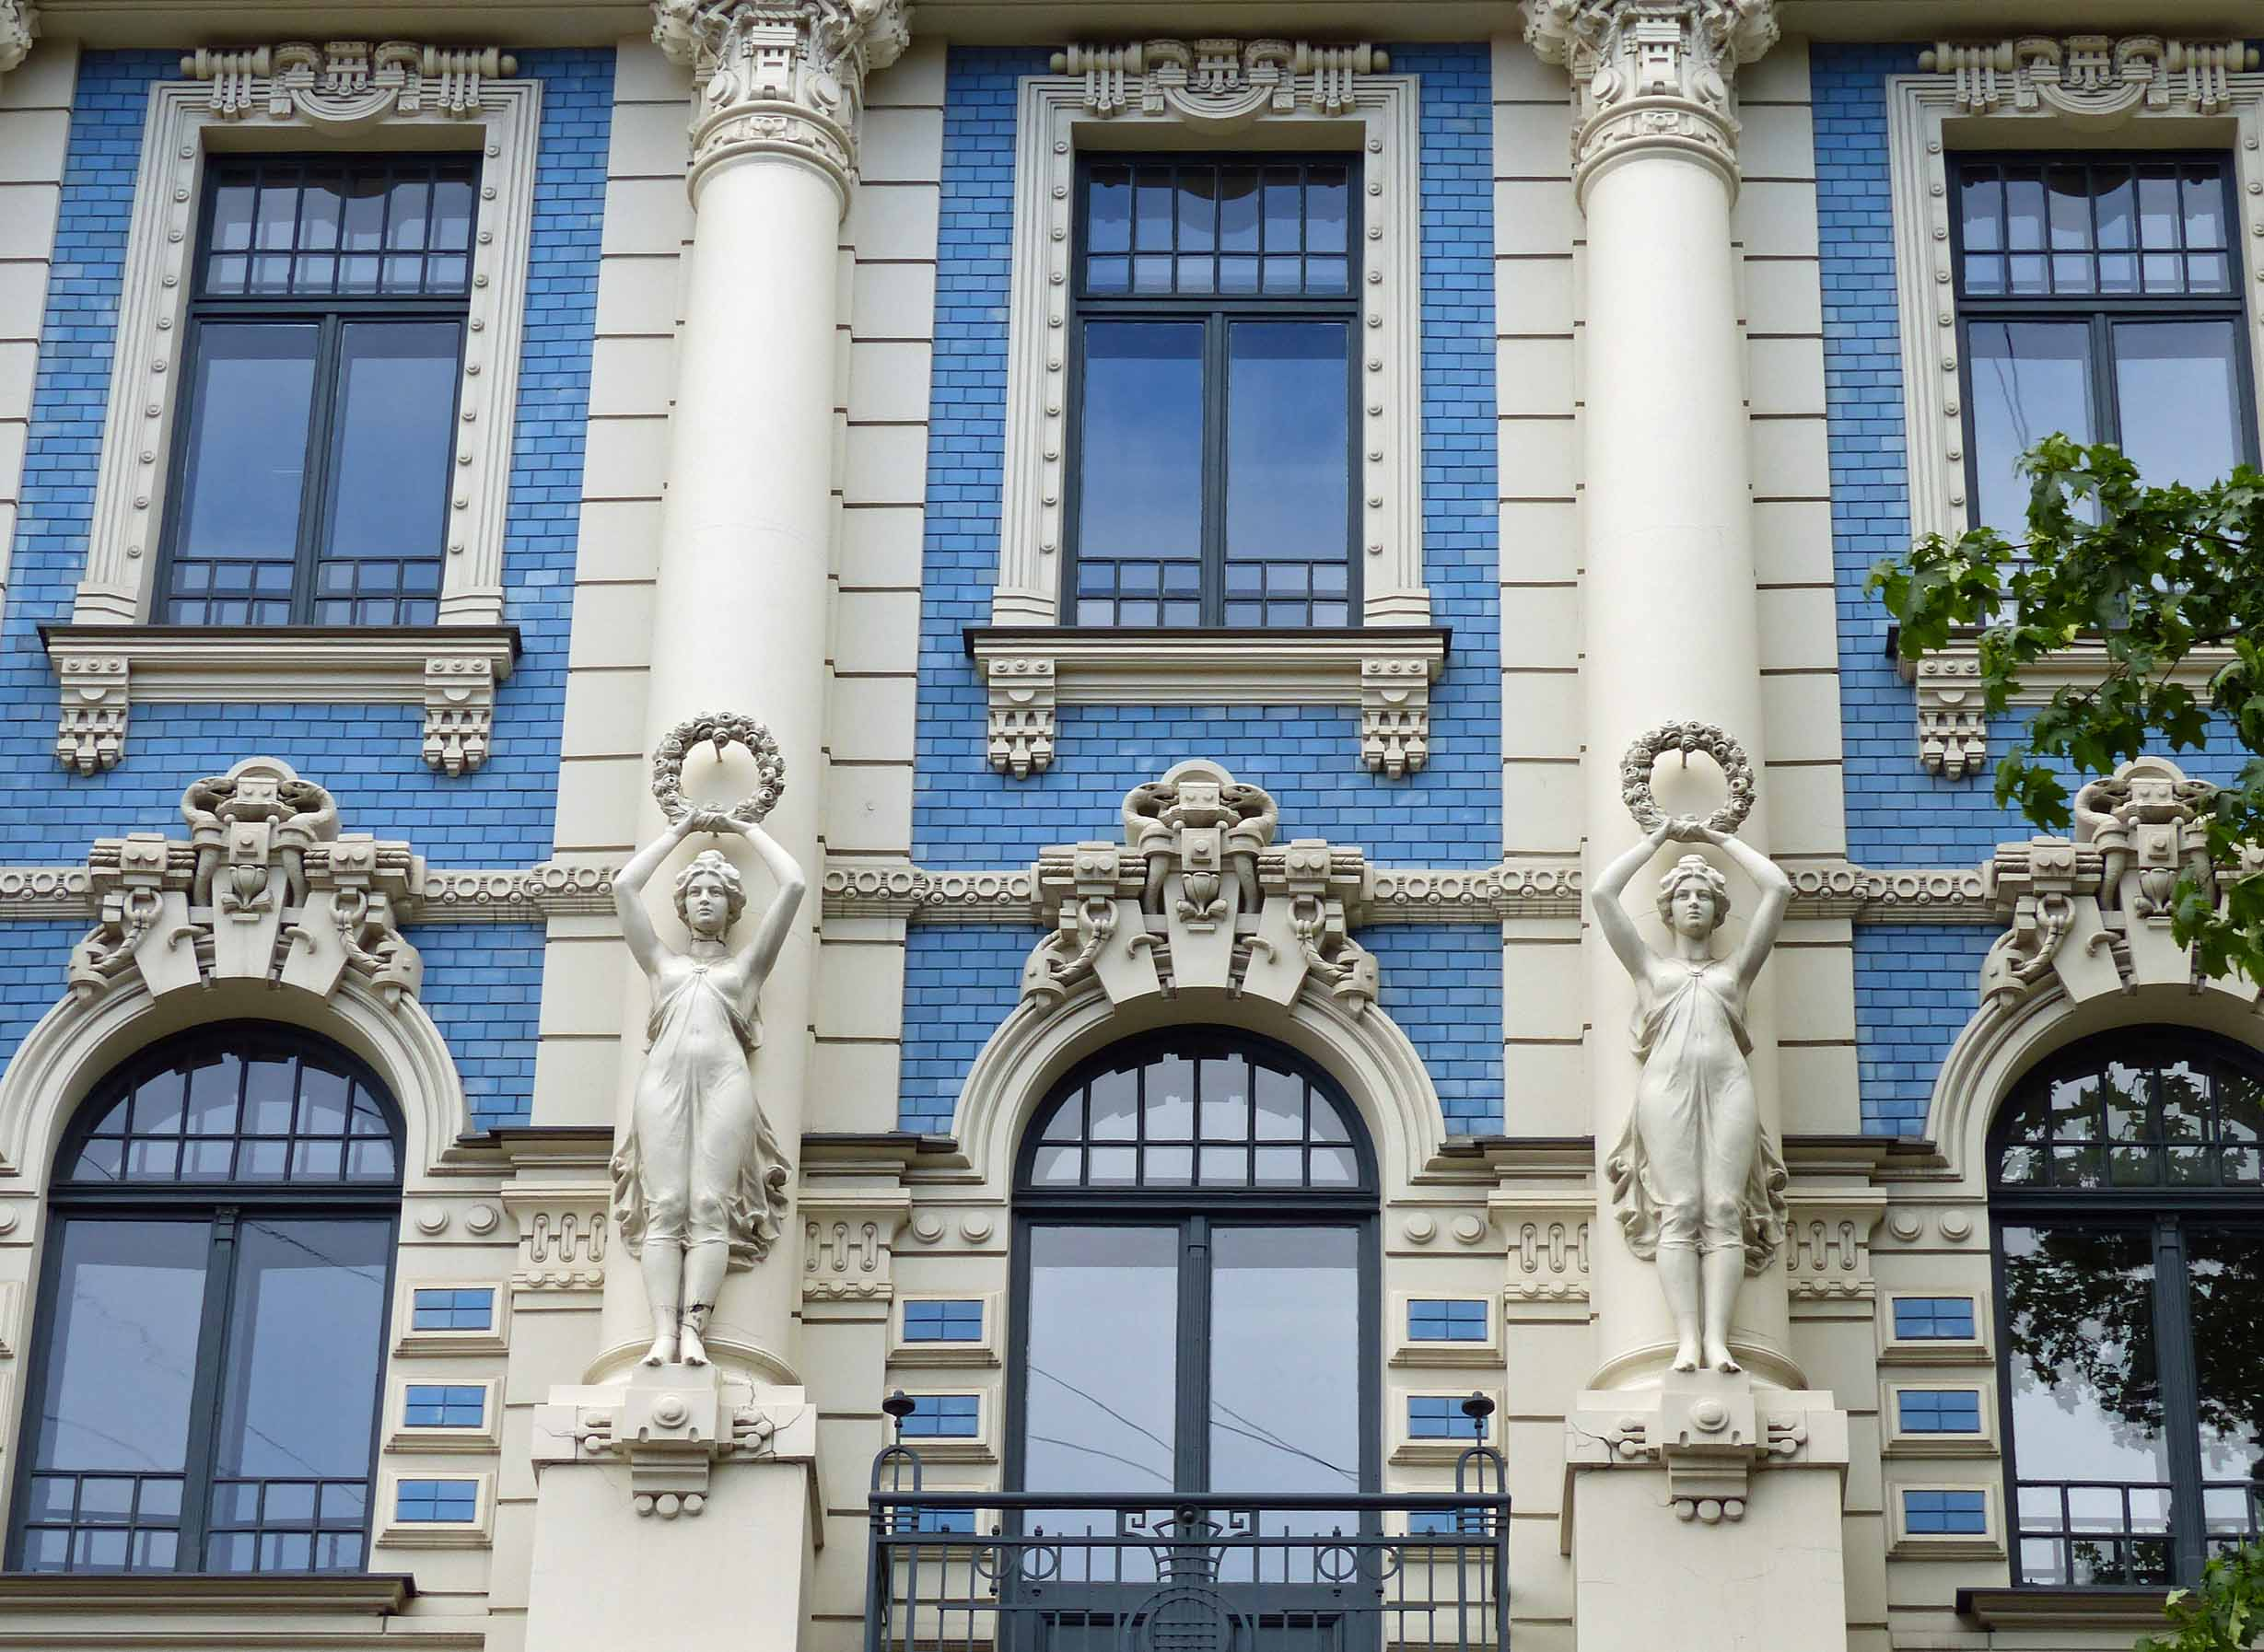 Ornate blue building with white carvings